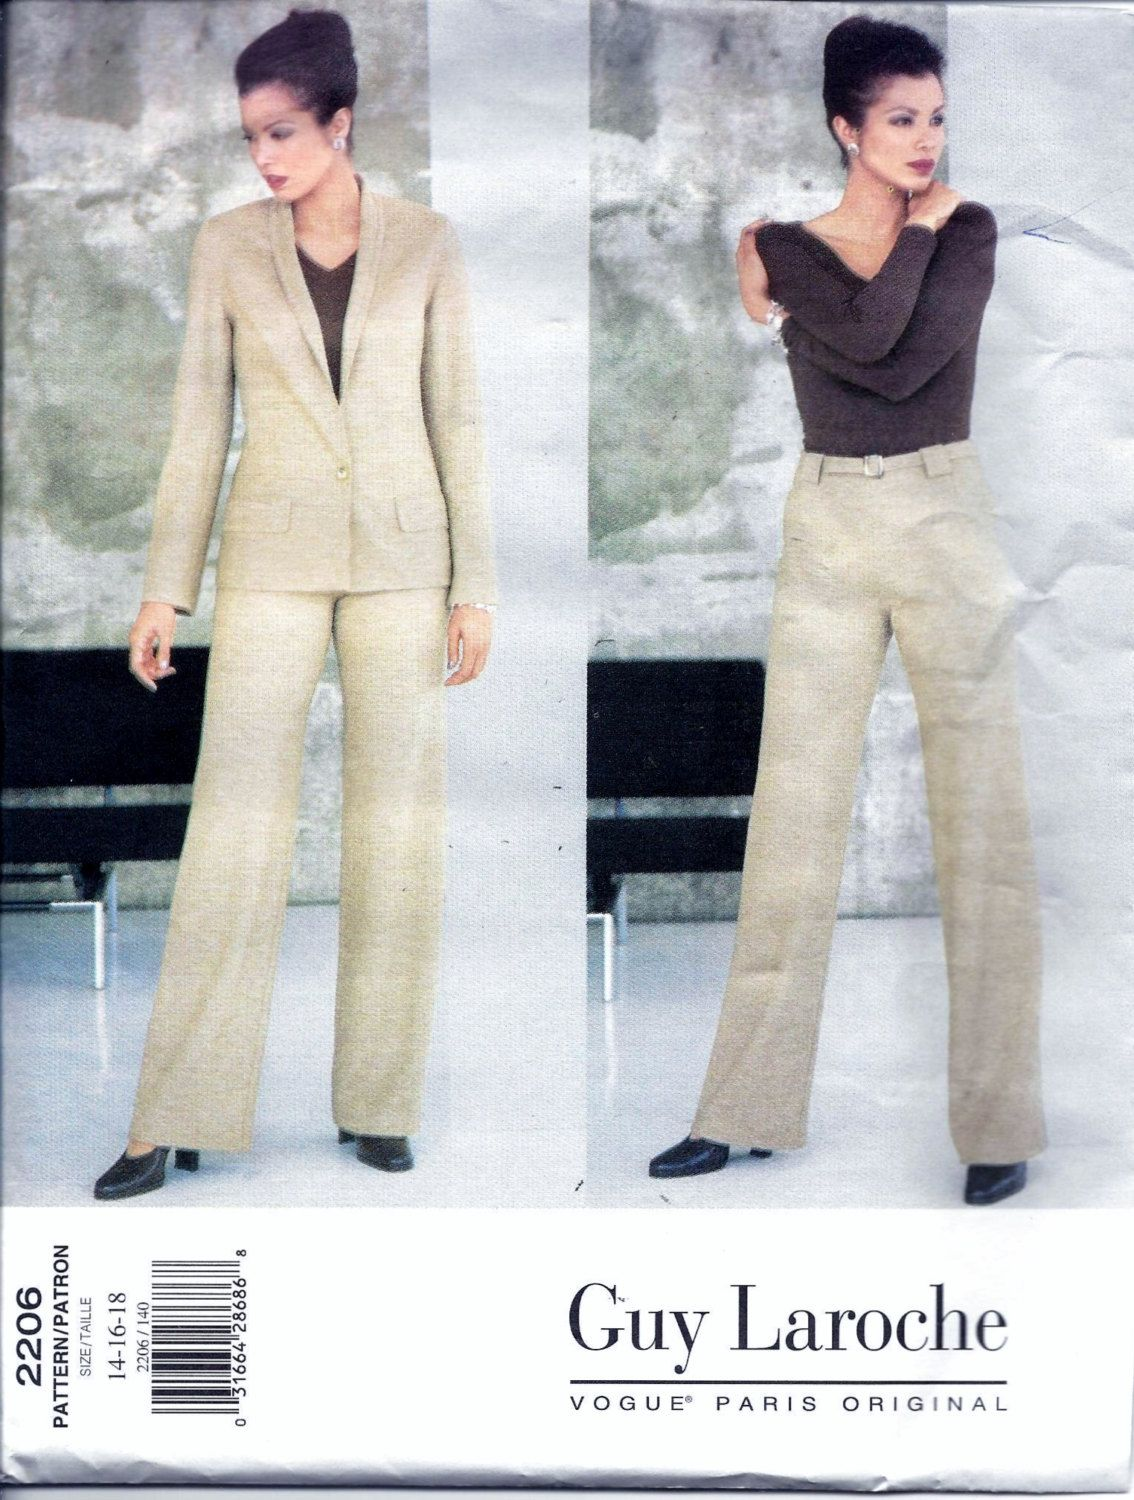 Vogue 2206 GUY LAROCHE Suit Jacket Pants And Belt Sewing Pattern Size 14, 16 And 18 UNCUT Paris Original by vintagepatternstore on Etsy